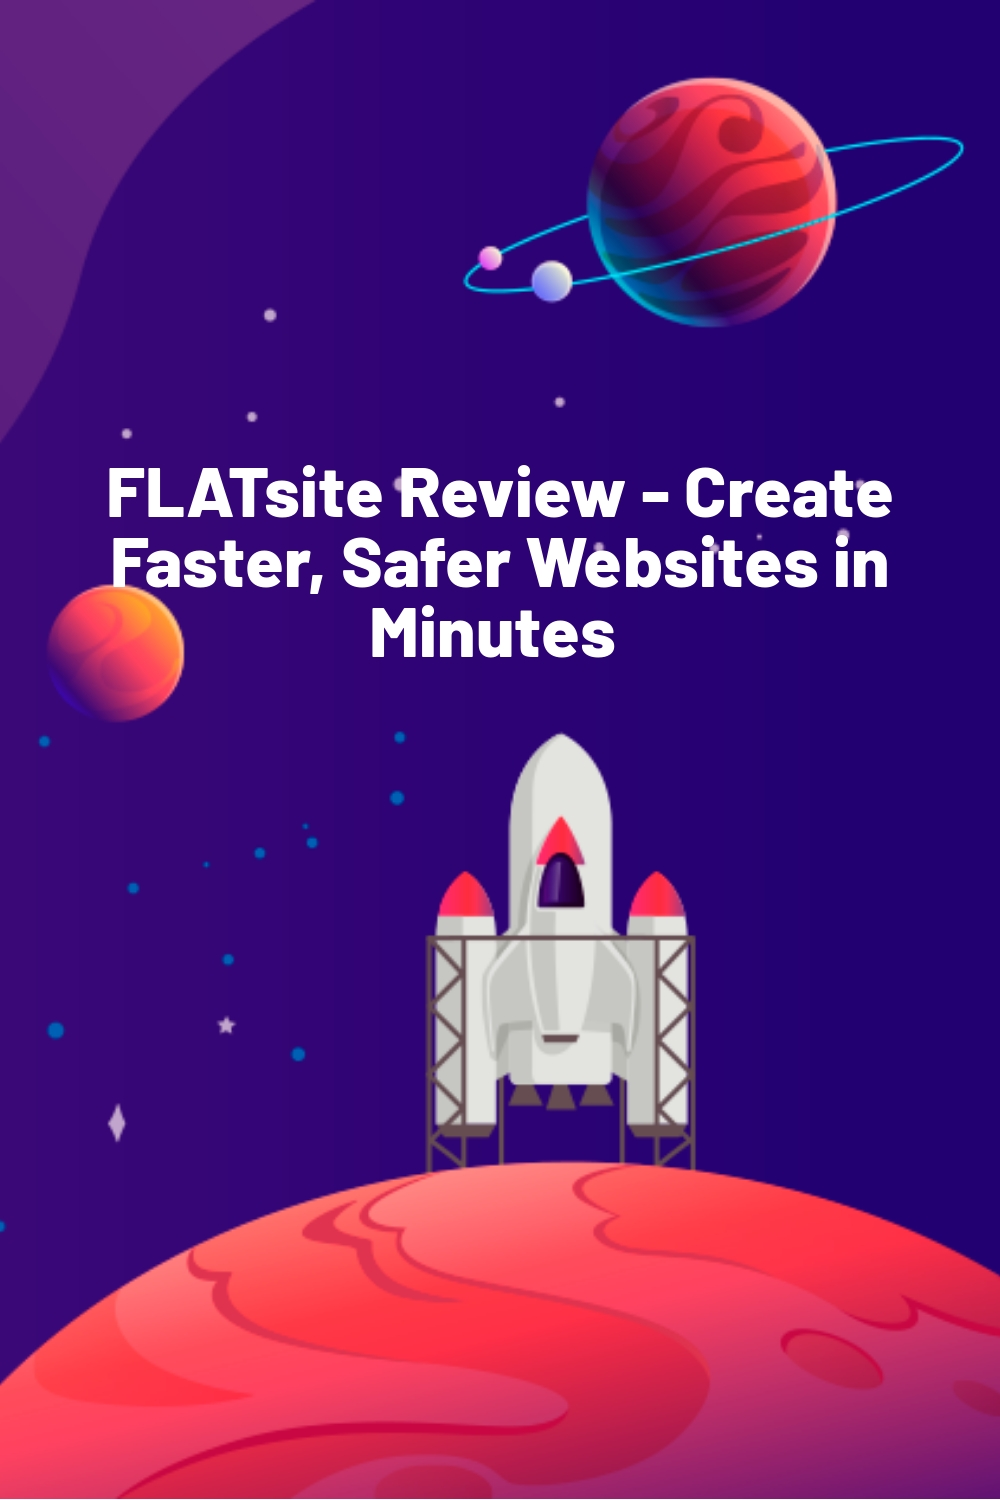 FLATsite Review – Create Faster, Safer Websites in Minutes